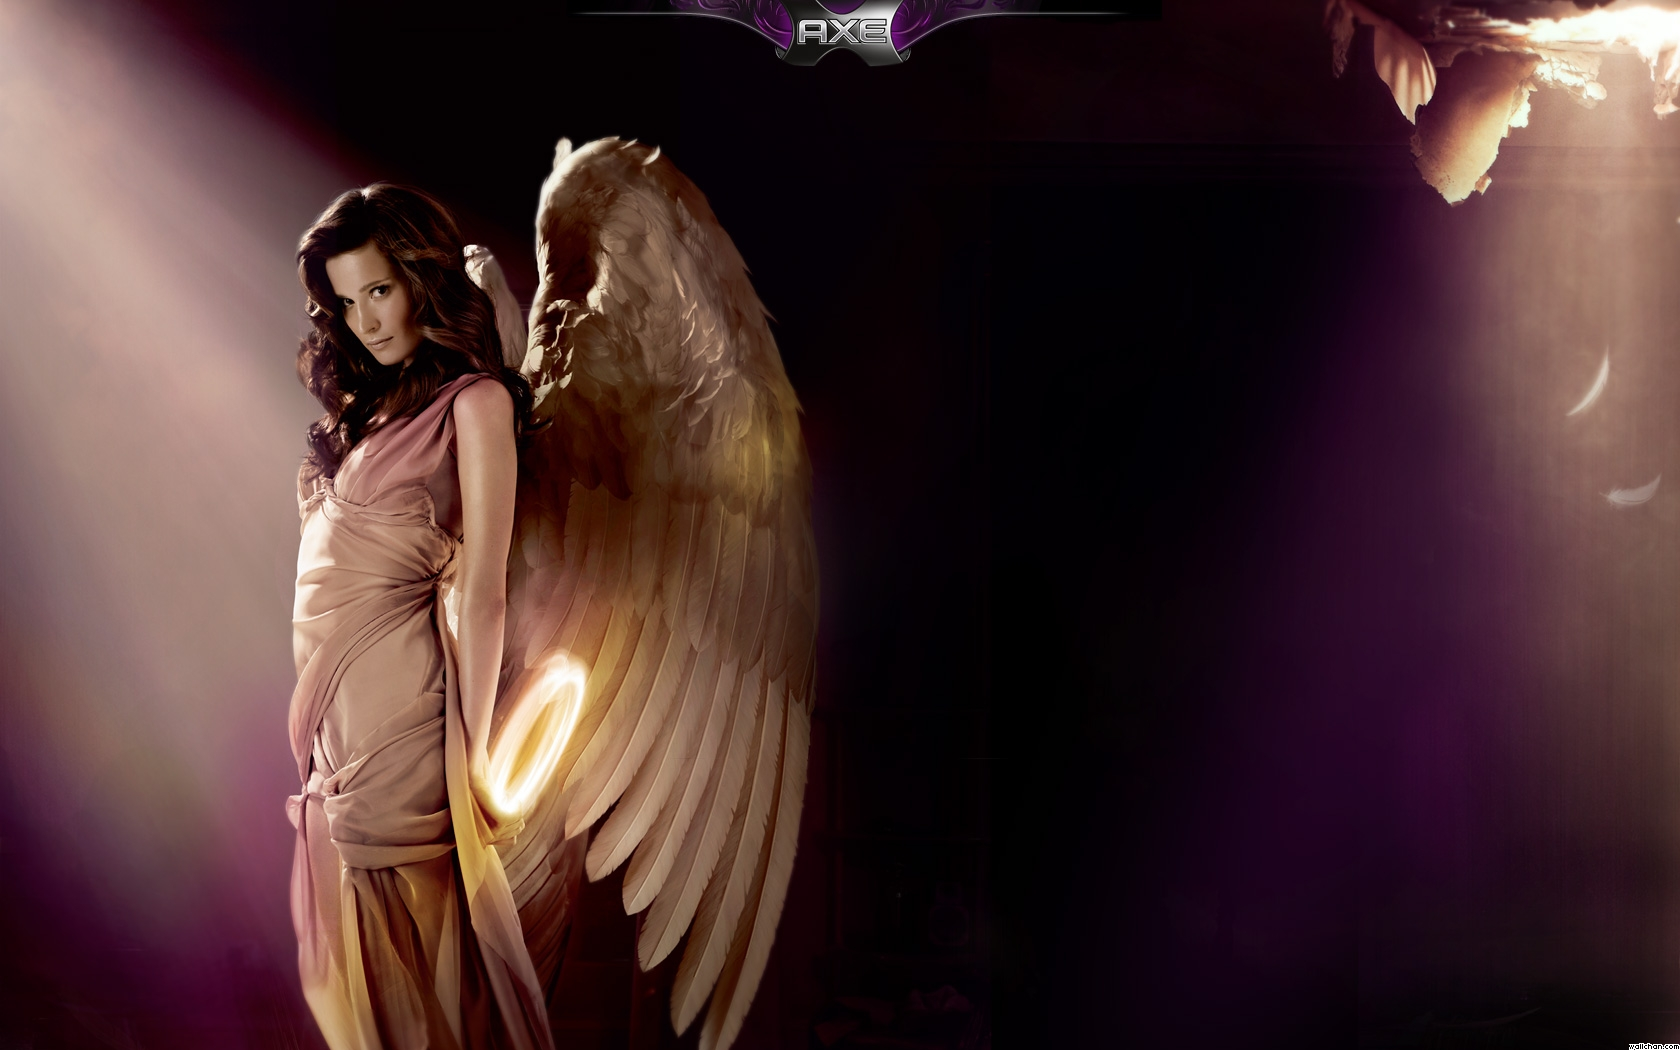 Axe Excite Brunette Angel Backgrounds